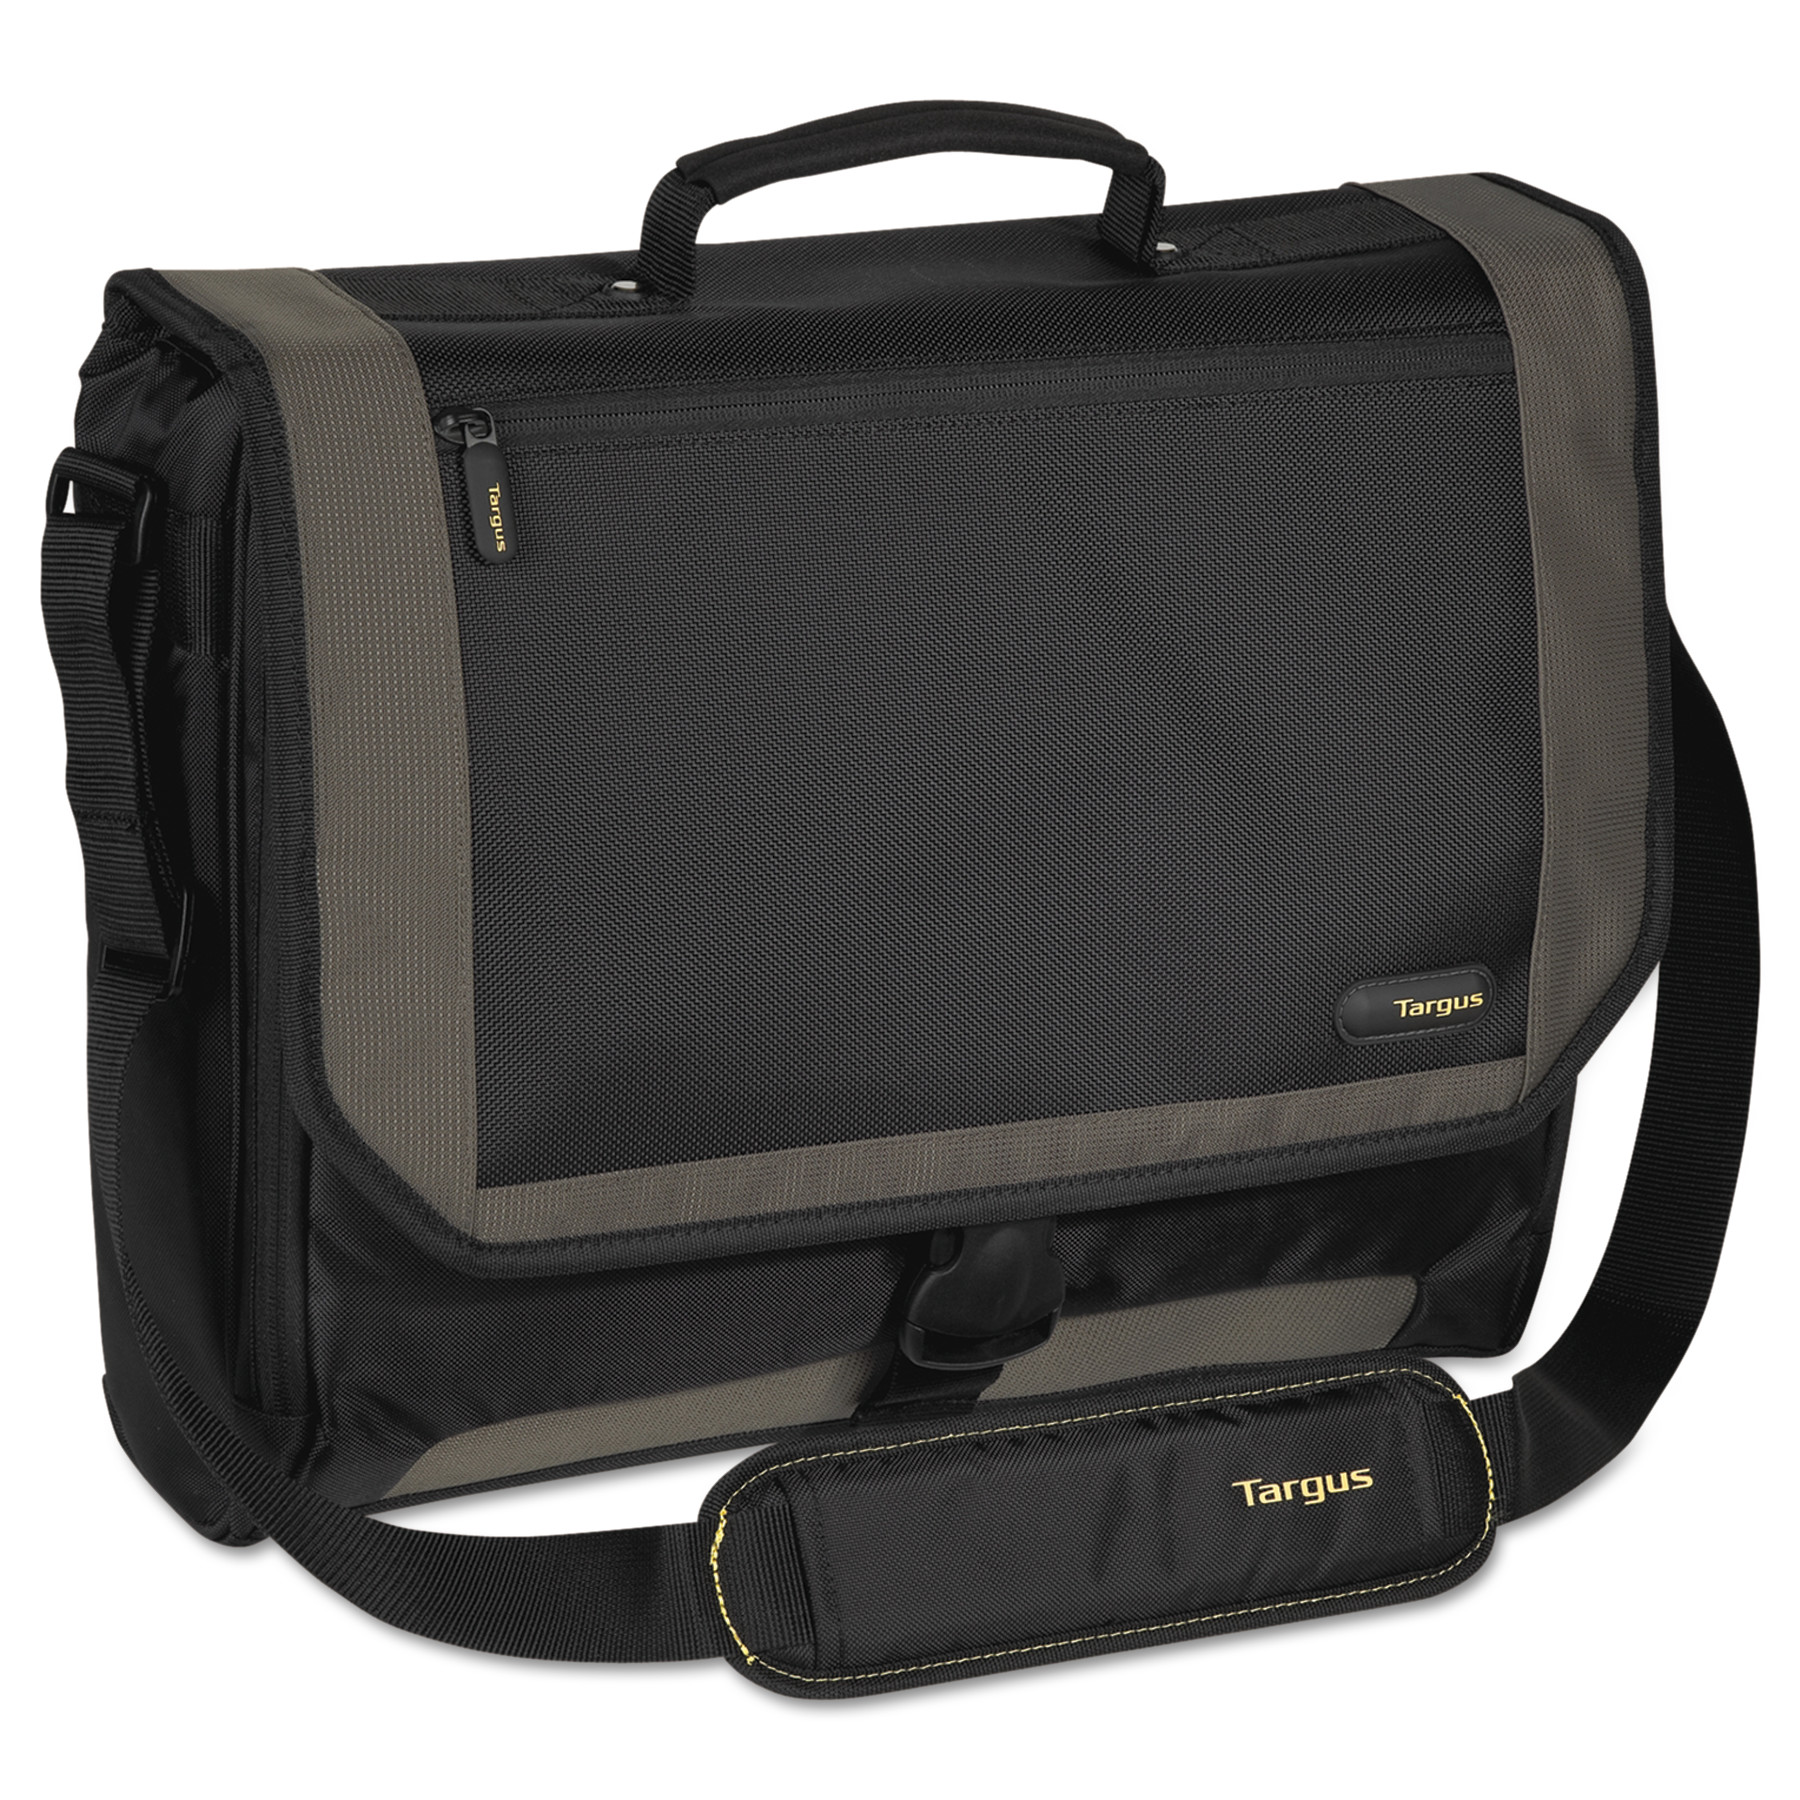 Targus CityGear Miami Messenger Laptop Case, Nylon, 19 x 5 x 14, Black Gray Yellow by Targus